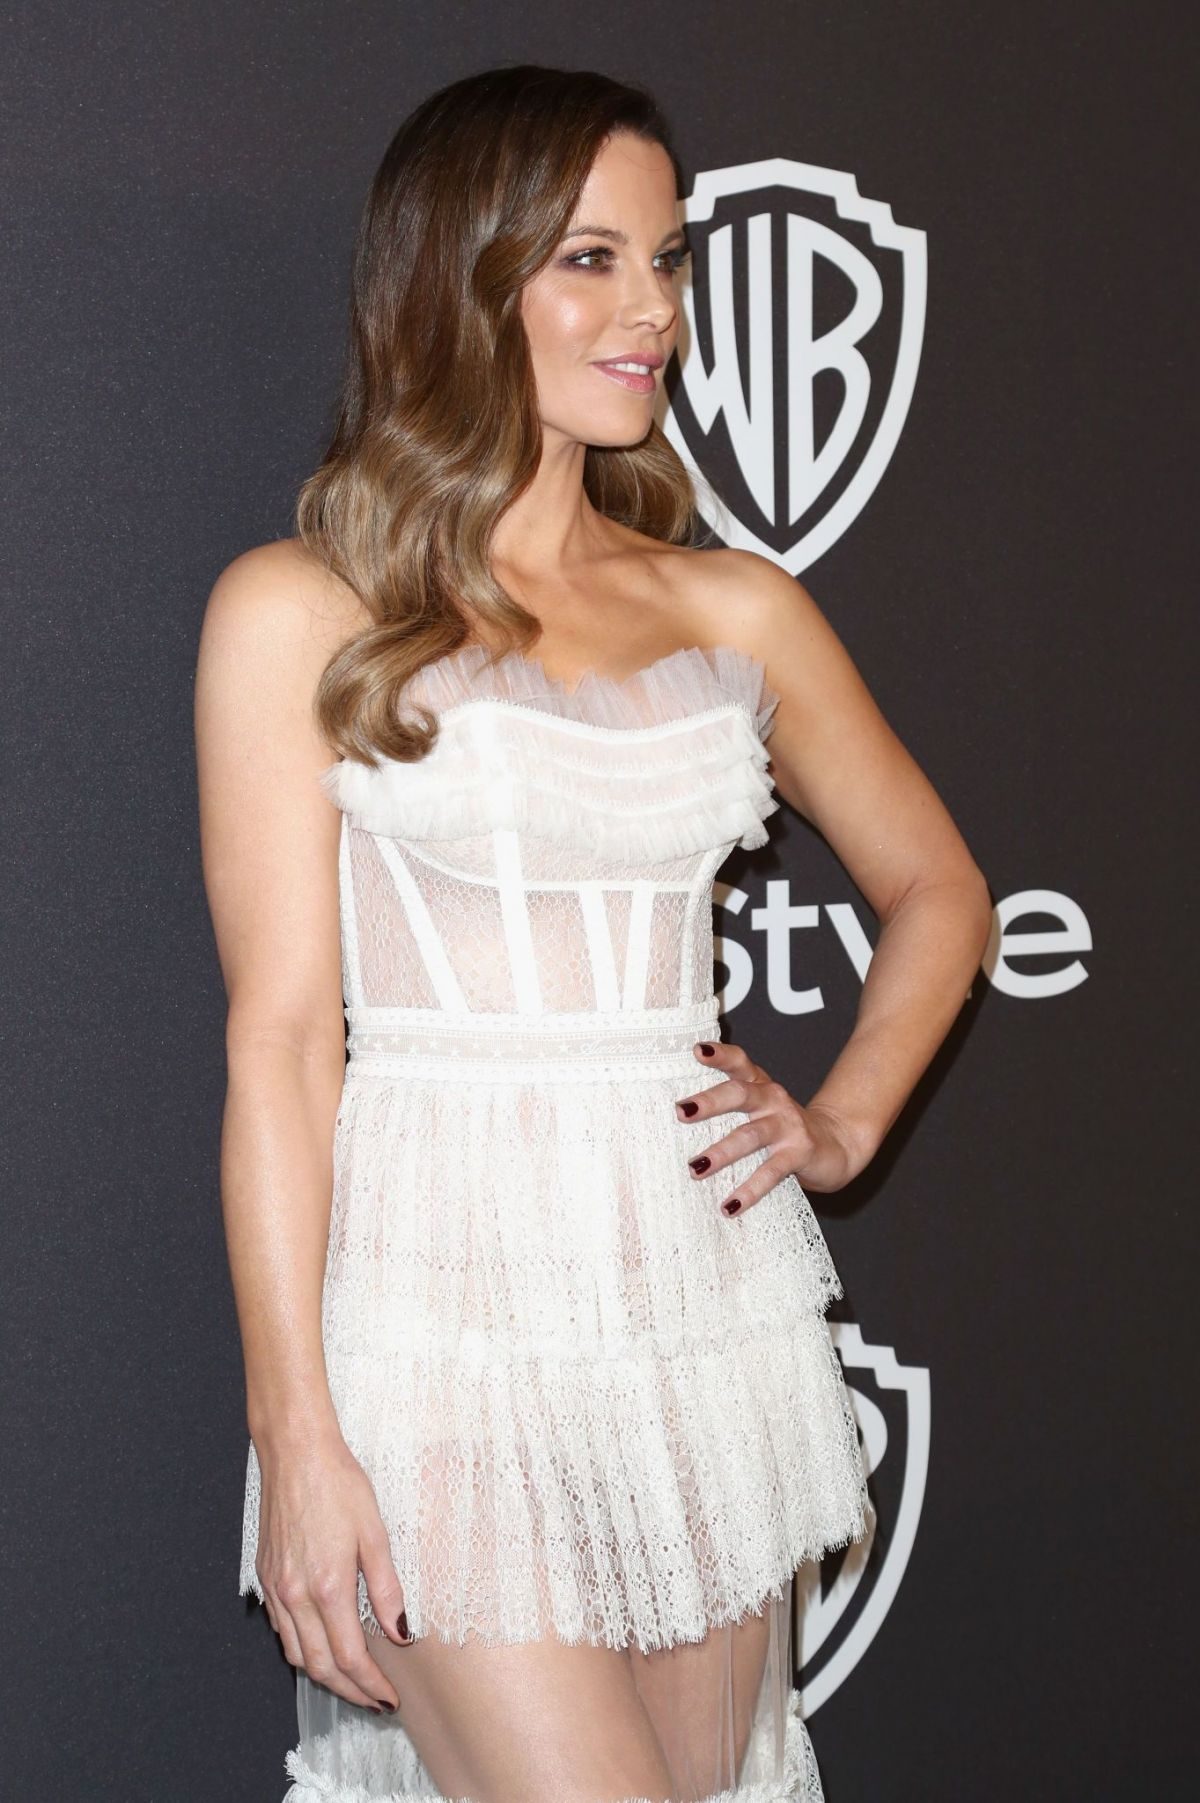 kate-beckinsale-at-instyle-and-warner-bros-golden-globe-awards-afterparty-in-beverly-hills-01-06-2019-4.jpg